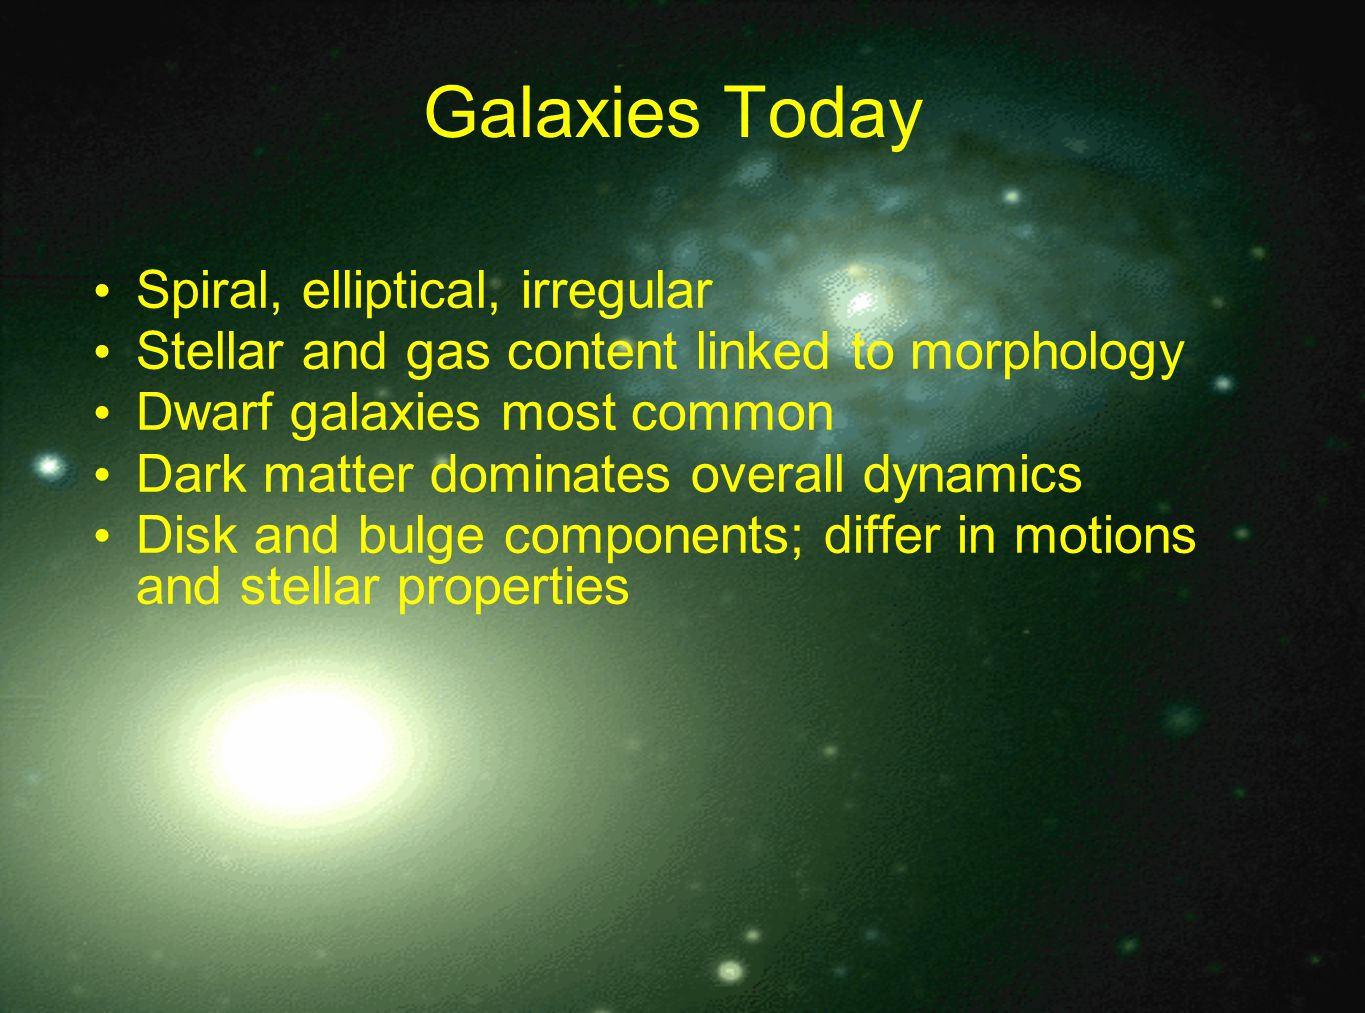 Galaxies Today Spiral, elliptical, irregular Stellar and gas content linked to morphology Dwarf galaxies most common Dark matter dominates overall dynamics Disk and bulge components; differ in motions and stellar properties